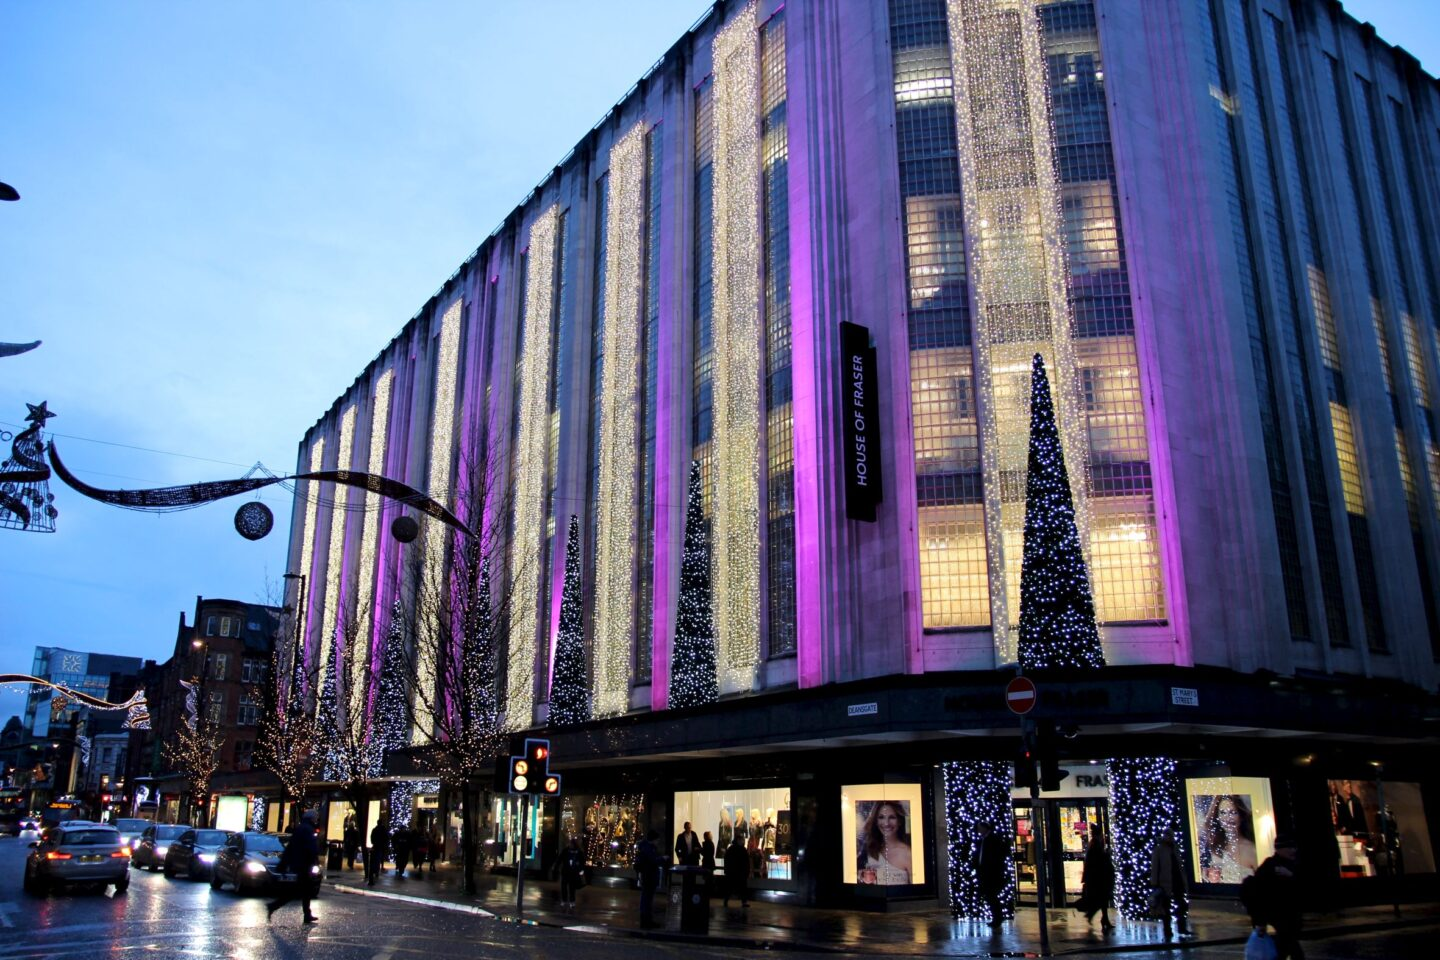 With over stores to explore, Manchester Arndale is the city's No 1 fashion destination. Fashion in every flavour From fashion-forward high street brands and boutiques to a tempting range of restaurants and cafes, Manchester Arndale is the perfect venue for shoppers with taste.